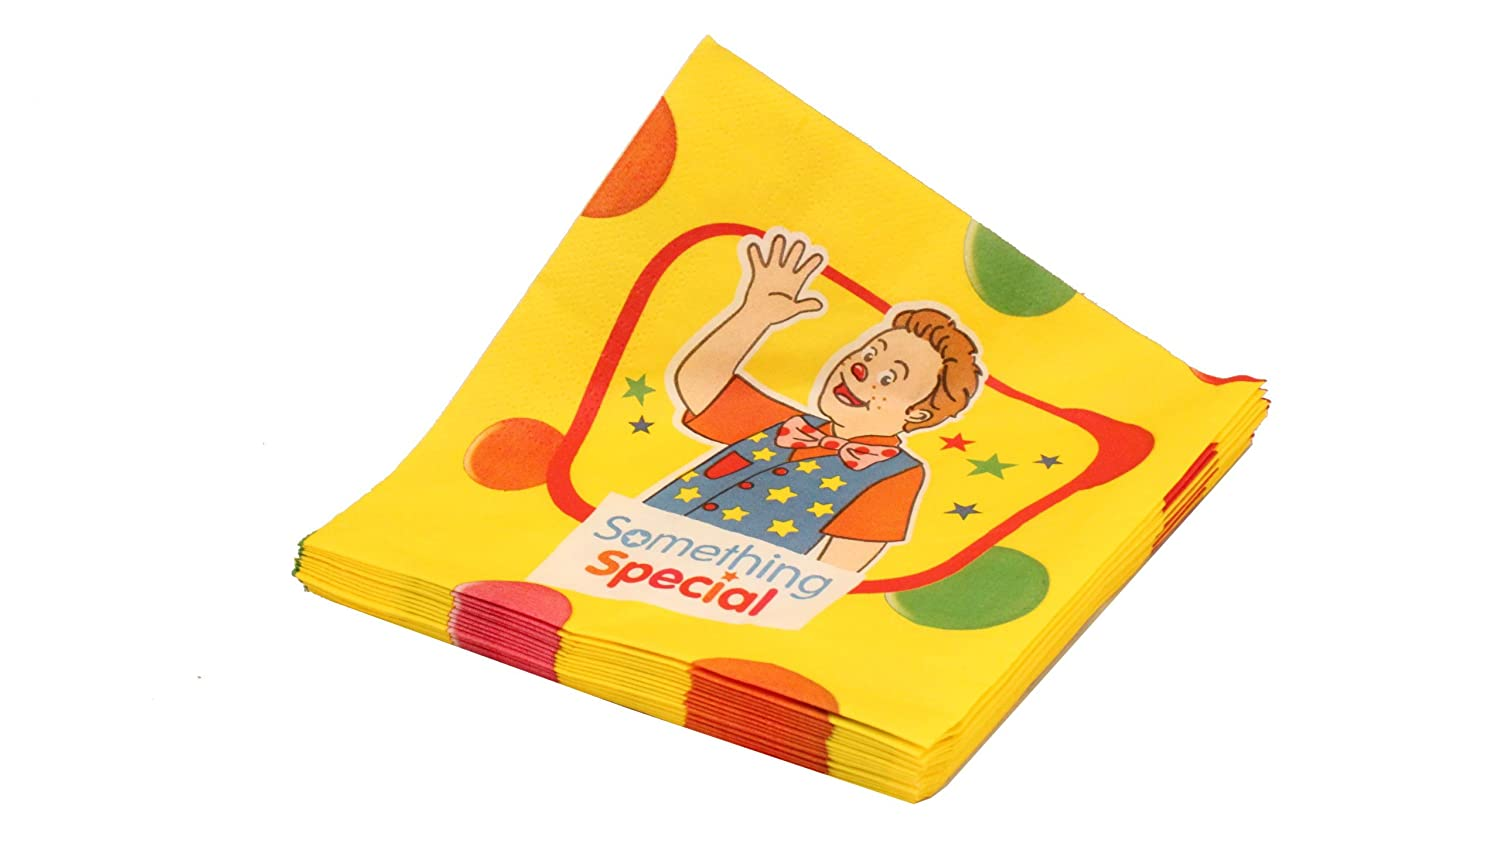 Something Special Party Ware Napkins (Pack of 16) BBC Worldwide SSSY07501